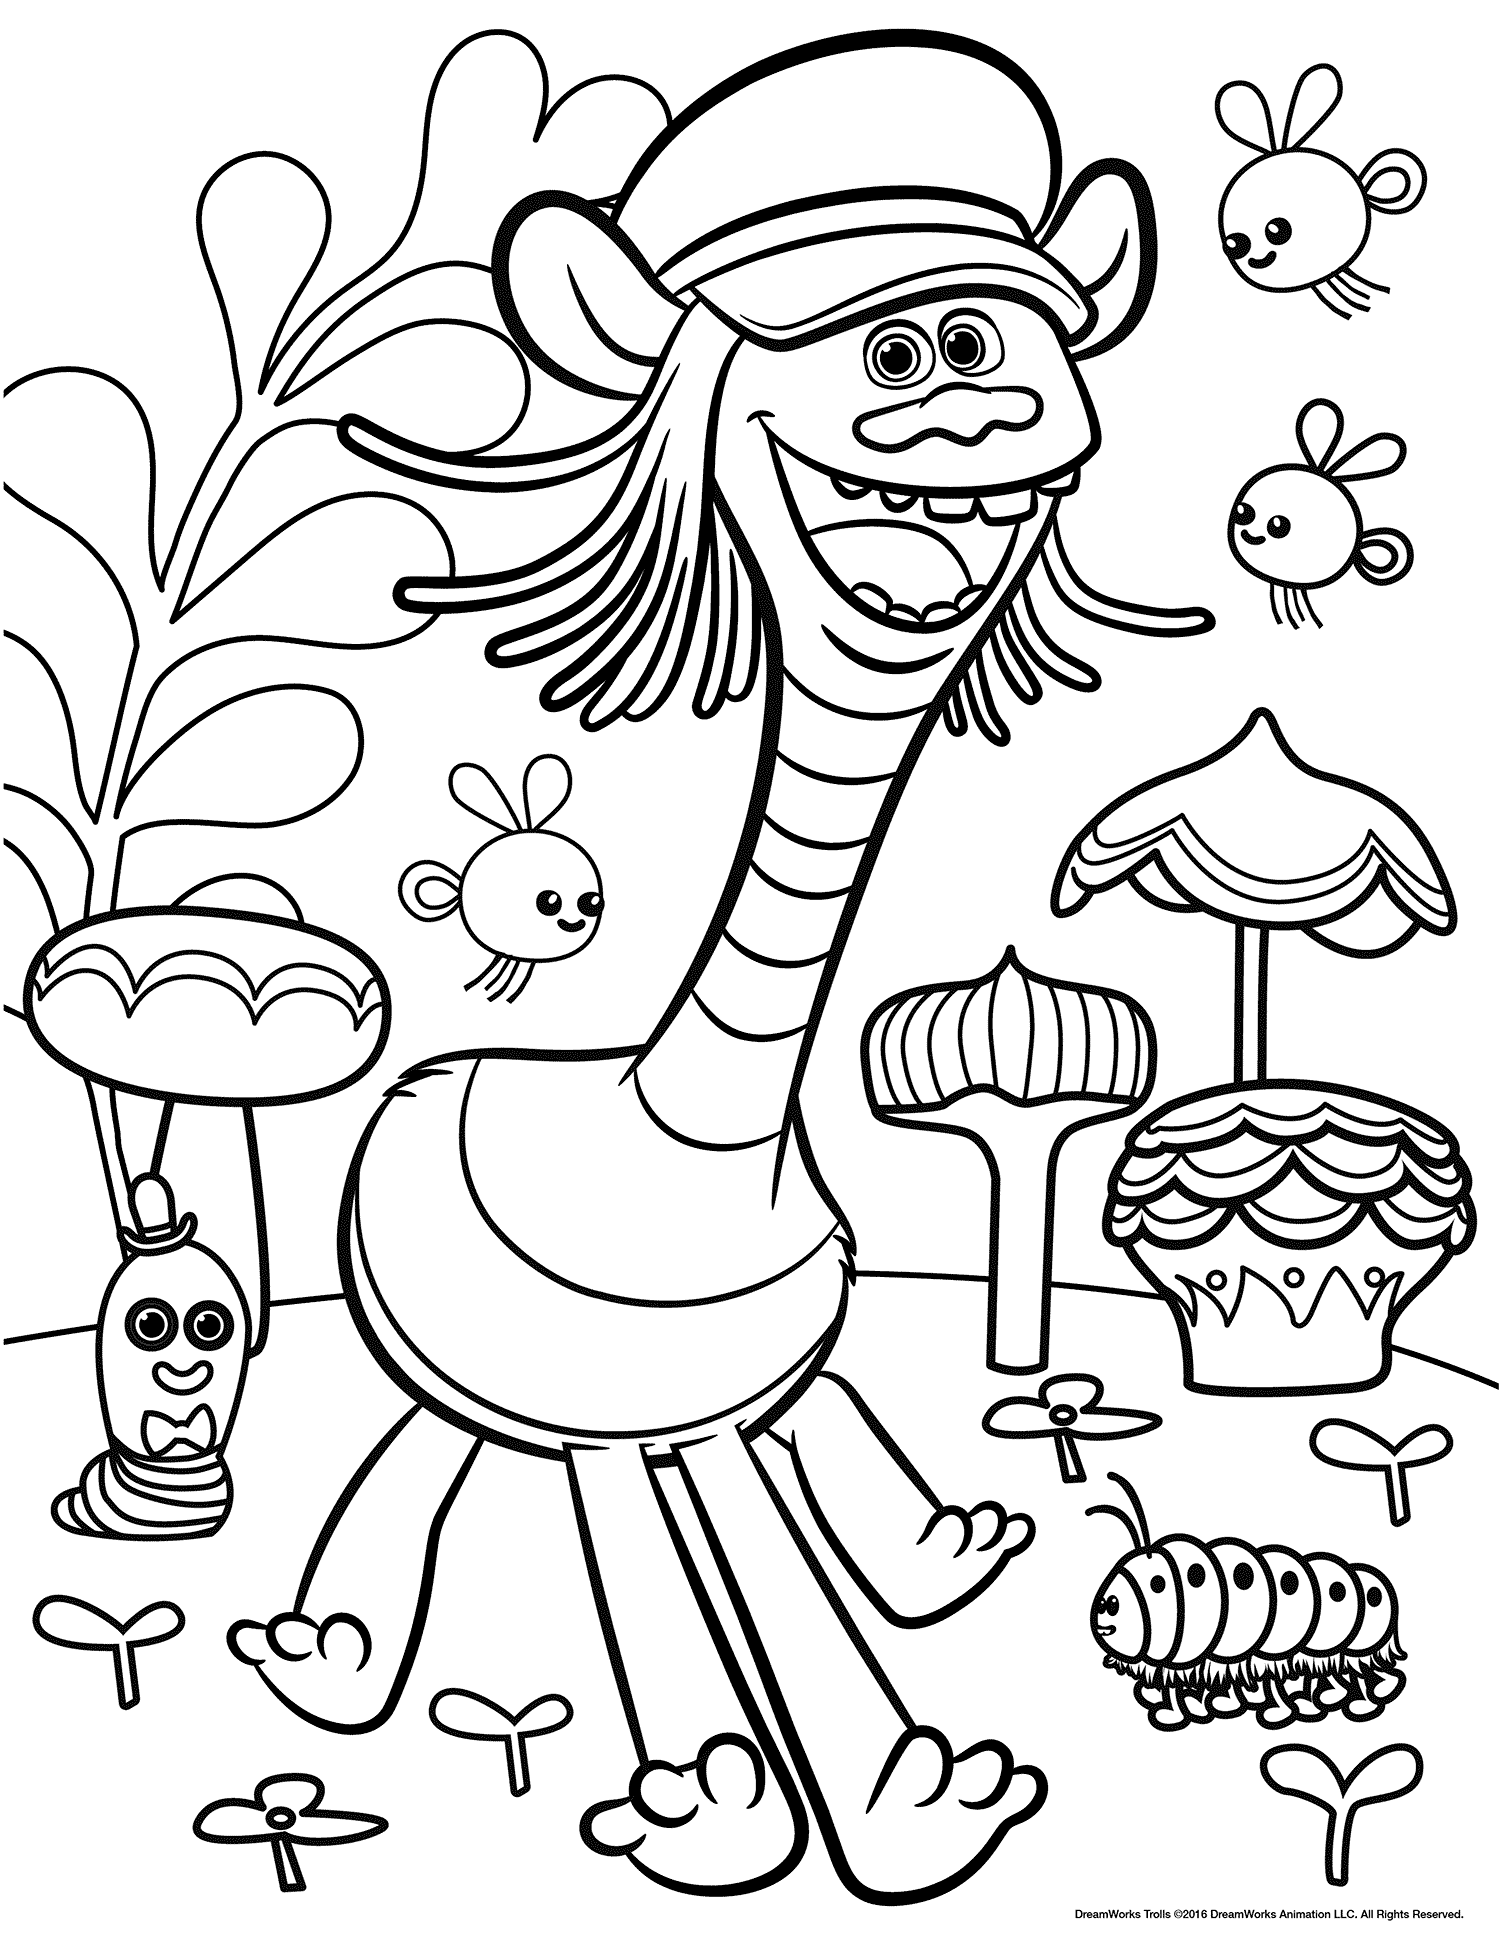 Dreamworks Trolls Coloring Pages Getcoloringpages Com Poppy Coloring Page Free Kids Coloring Pages Cartoon Coloring Pages